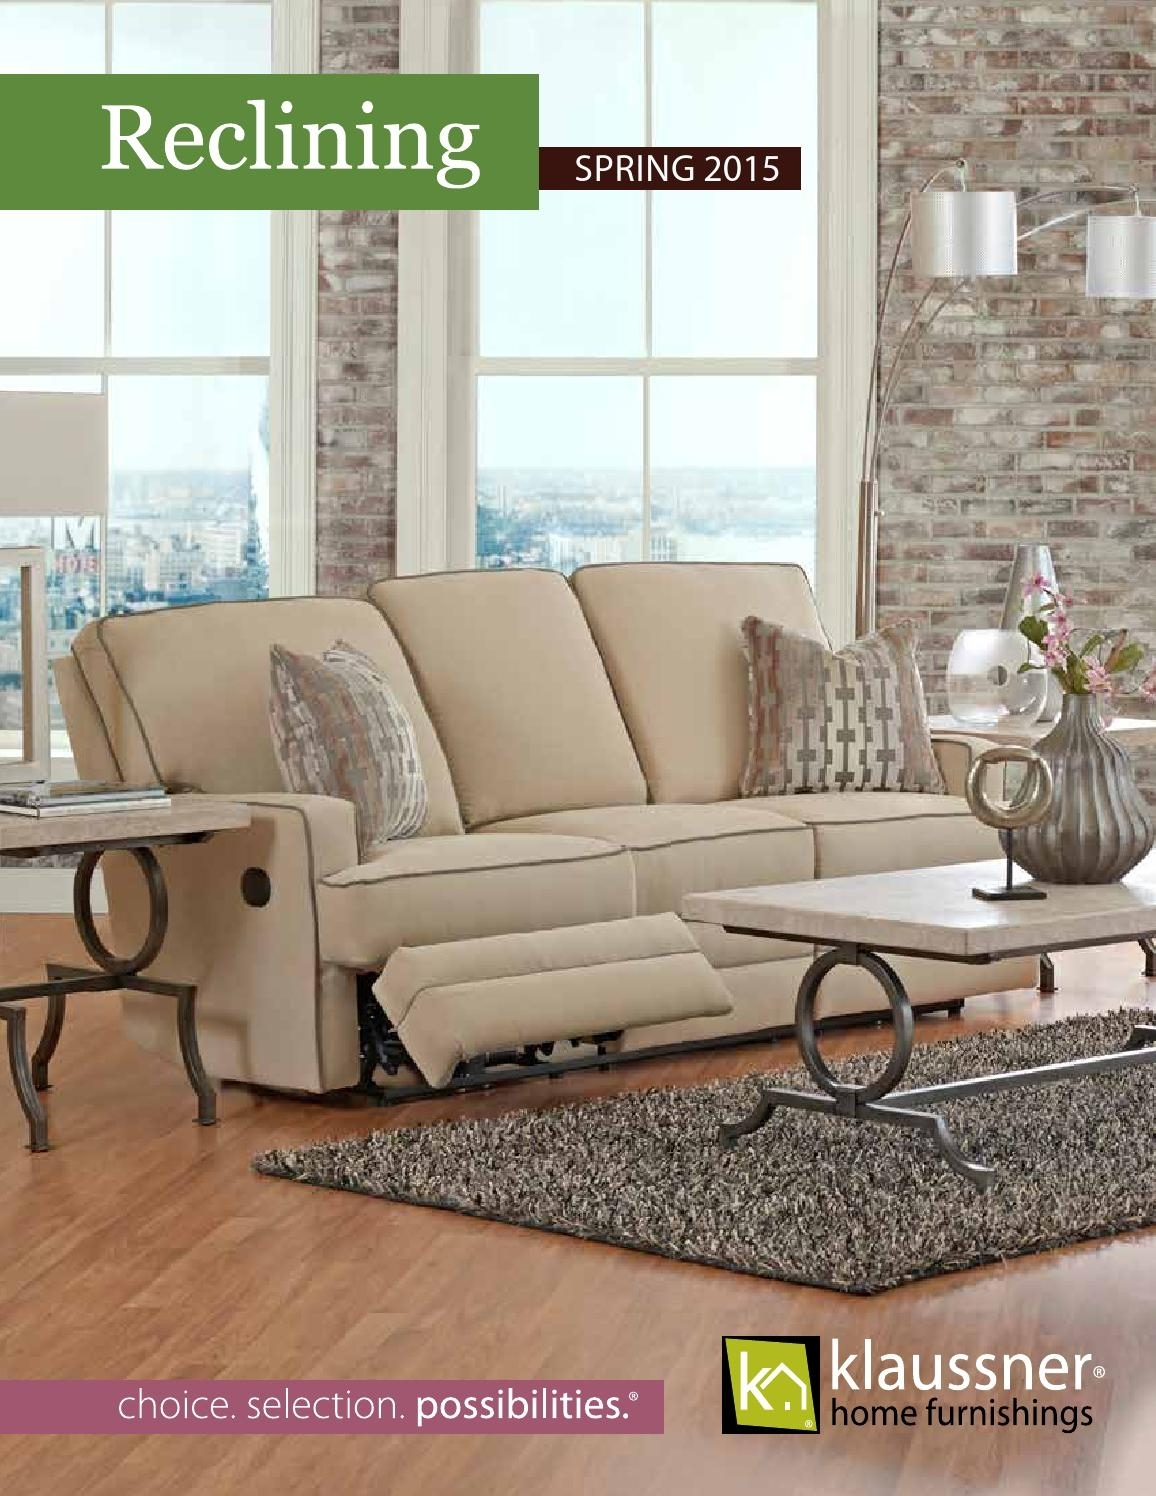 Reclining 2015 Catalogklaussner Home Furnishings – Issuu With Regard To Travis Cognac Leather 6 Piece Power Reclining Sectionals With Power Headrest & Usb (Image 22 of 25)